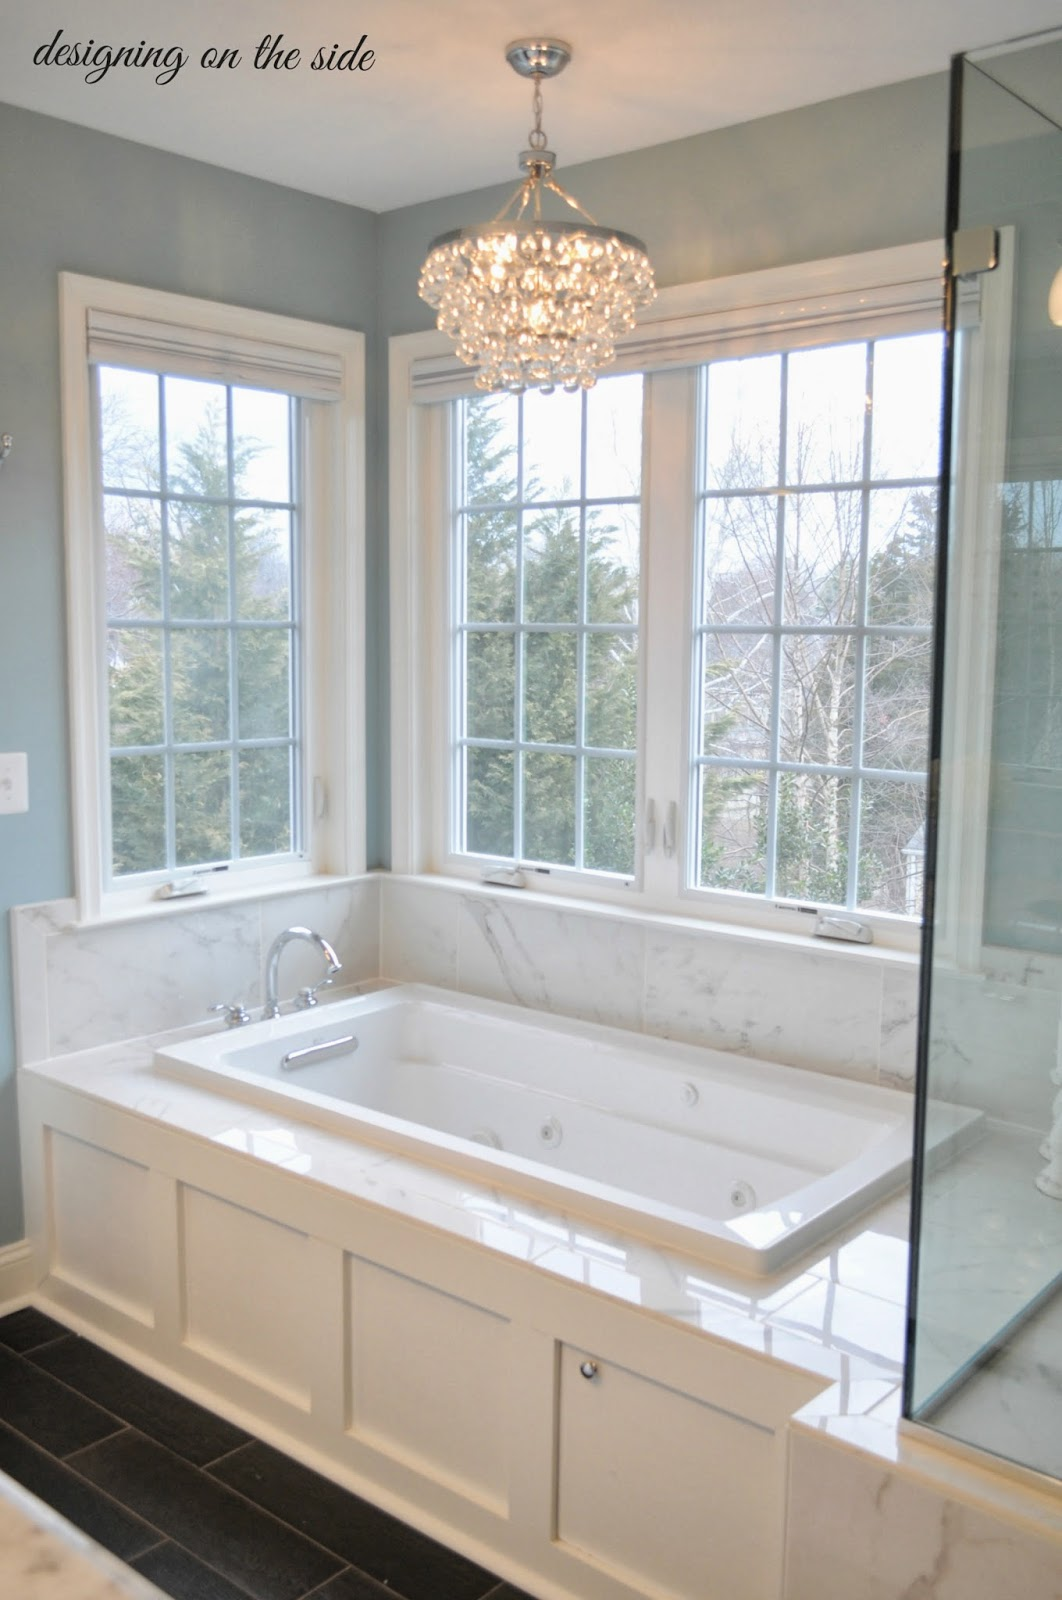 Designing on the side master bath reveal for Bathtub ideas